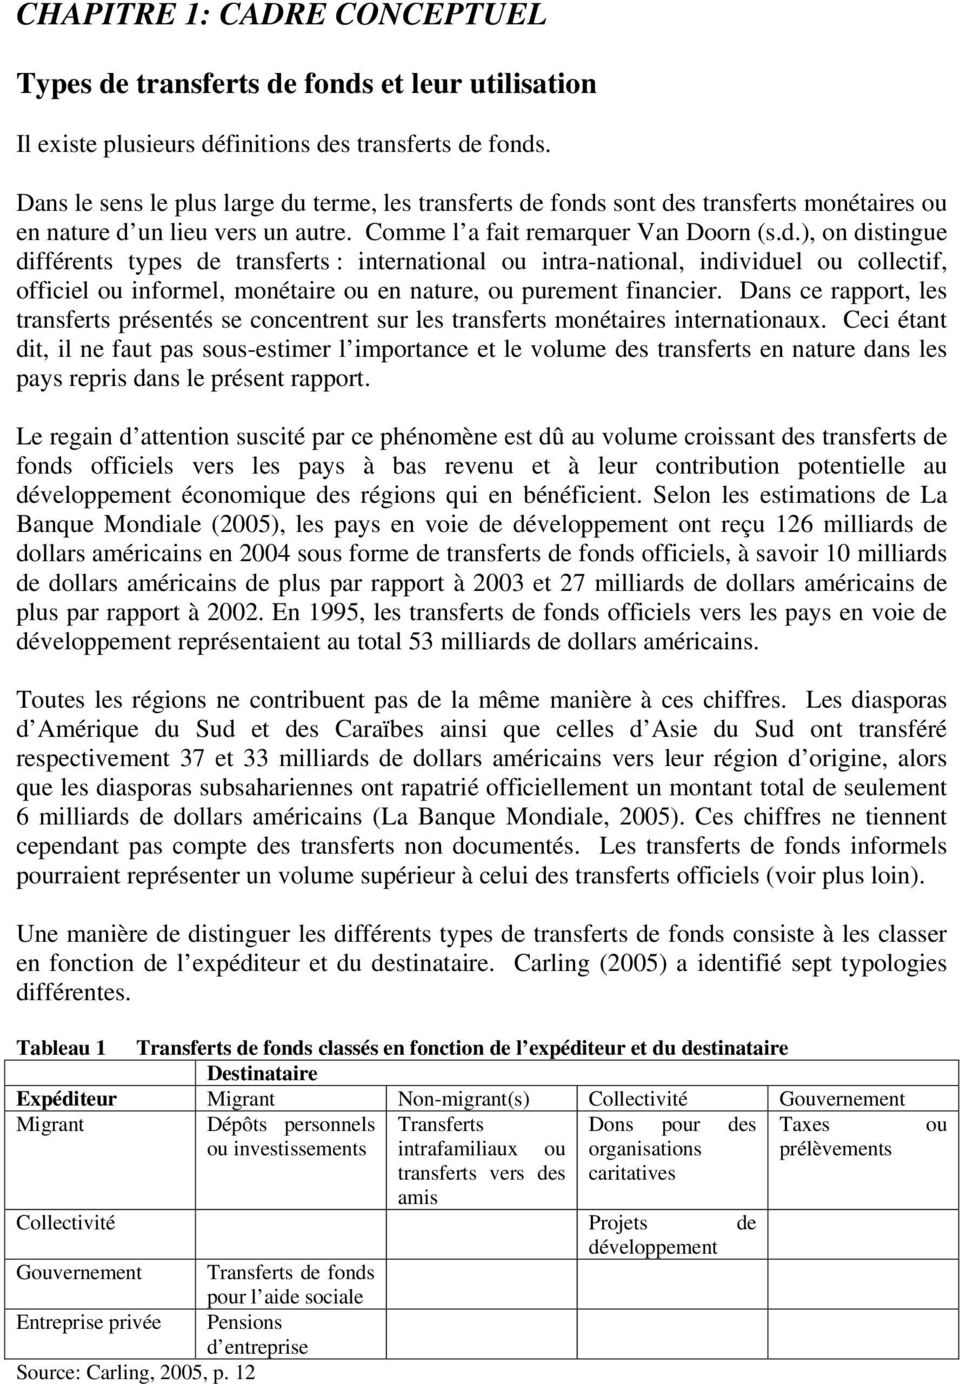 terme, les transferts de fonds sont des transferts monétaires ou en nature d un lieu vers un autre. Comme l a fait remarquer Van Doorn (s.d.), on distingue différents types de transferts : international ou intra-national, individuel ou collectif, officiel ou informel, monétaire ou en nature, ou purement financier.